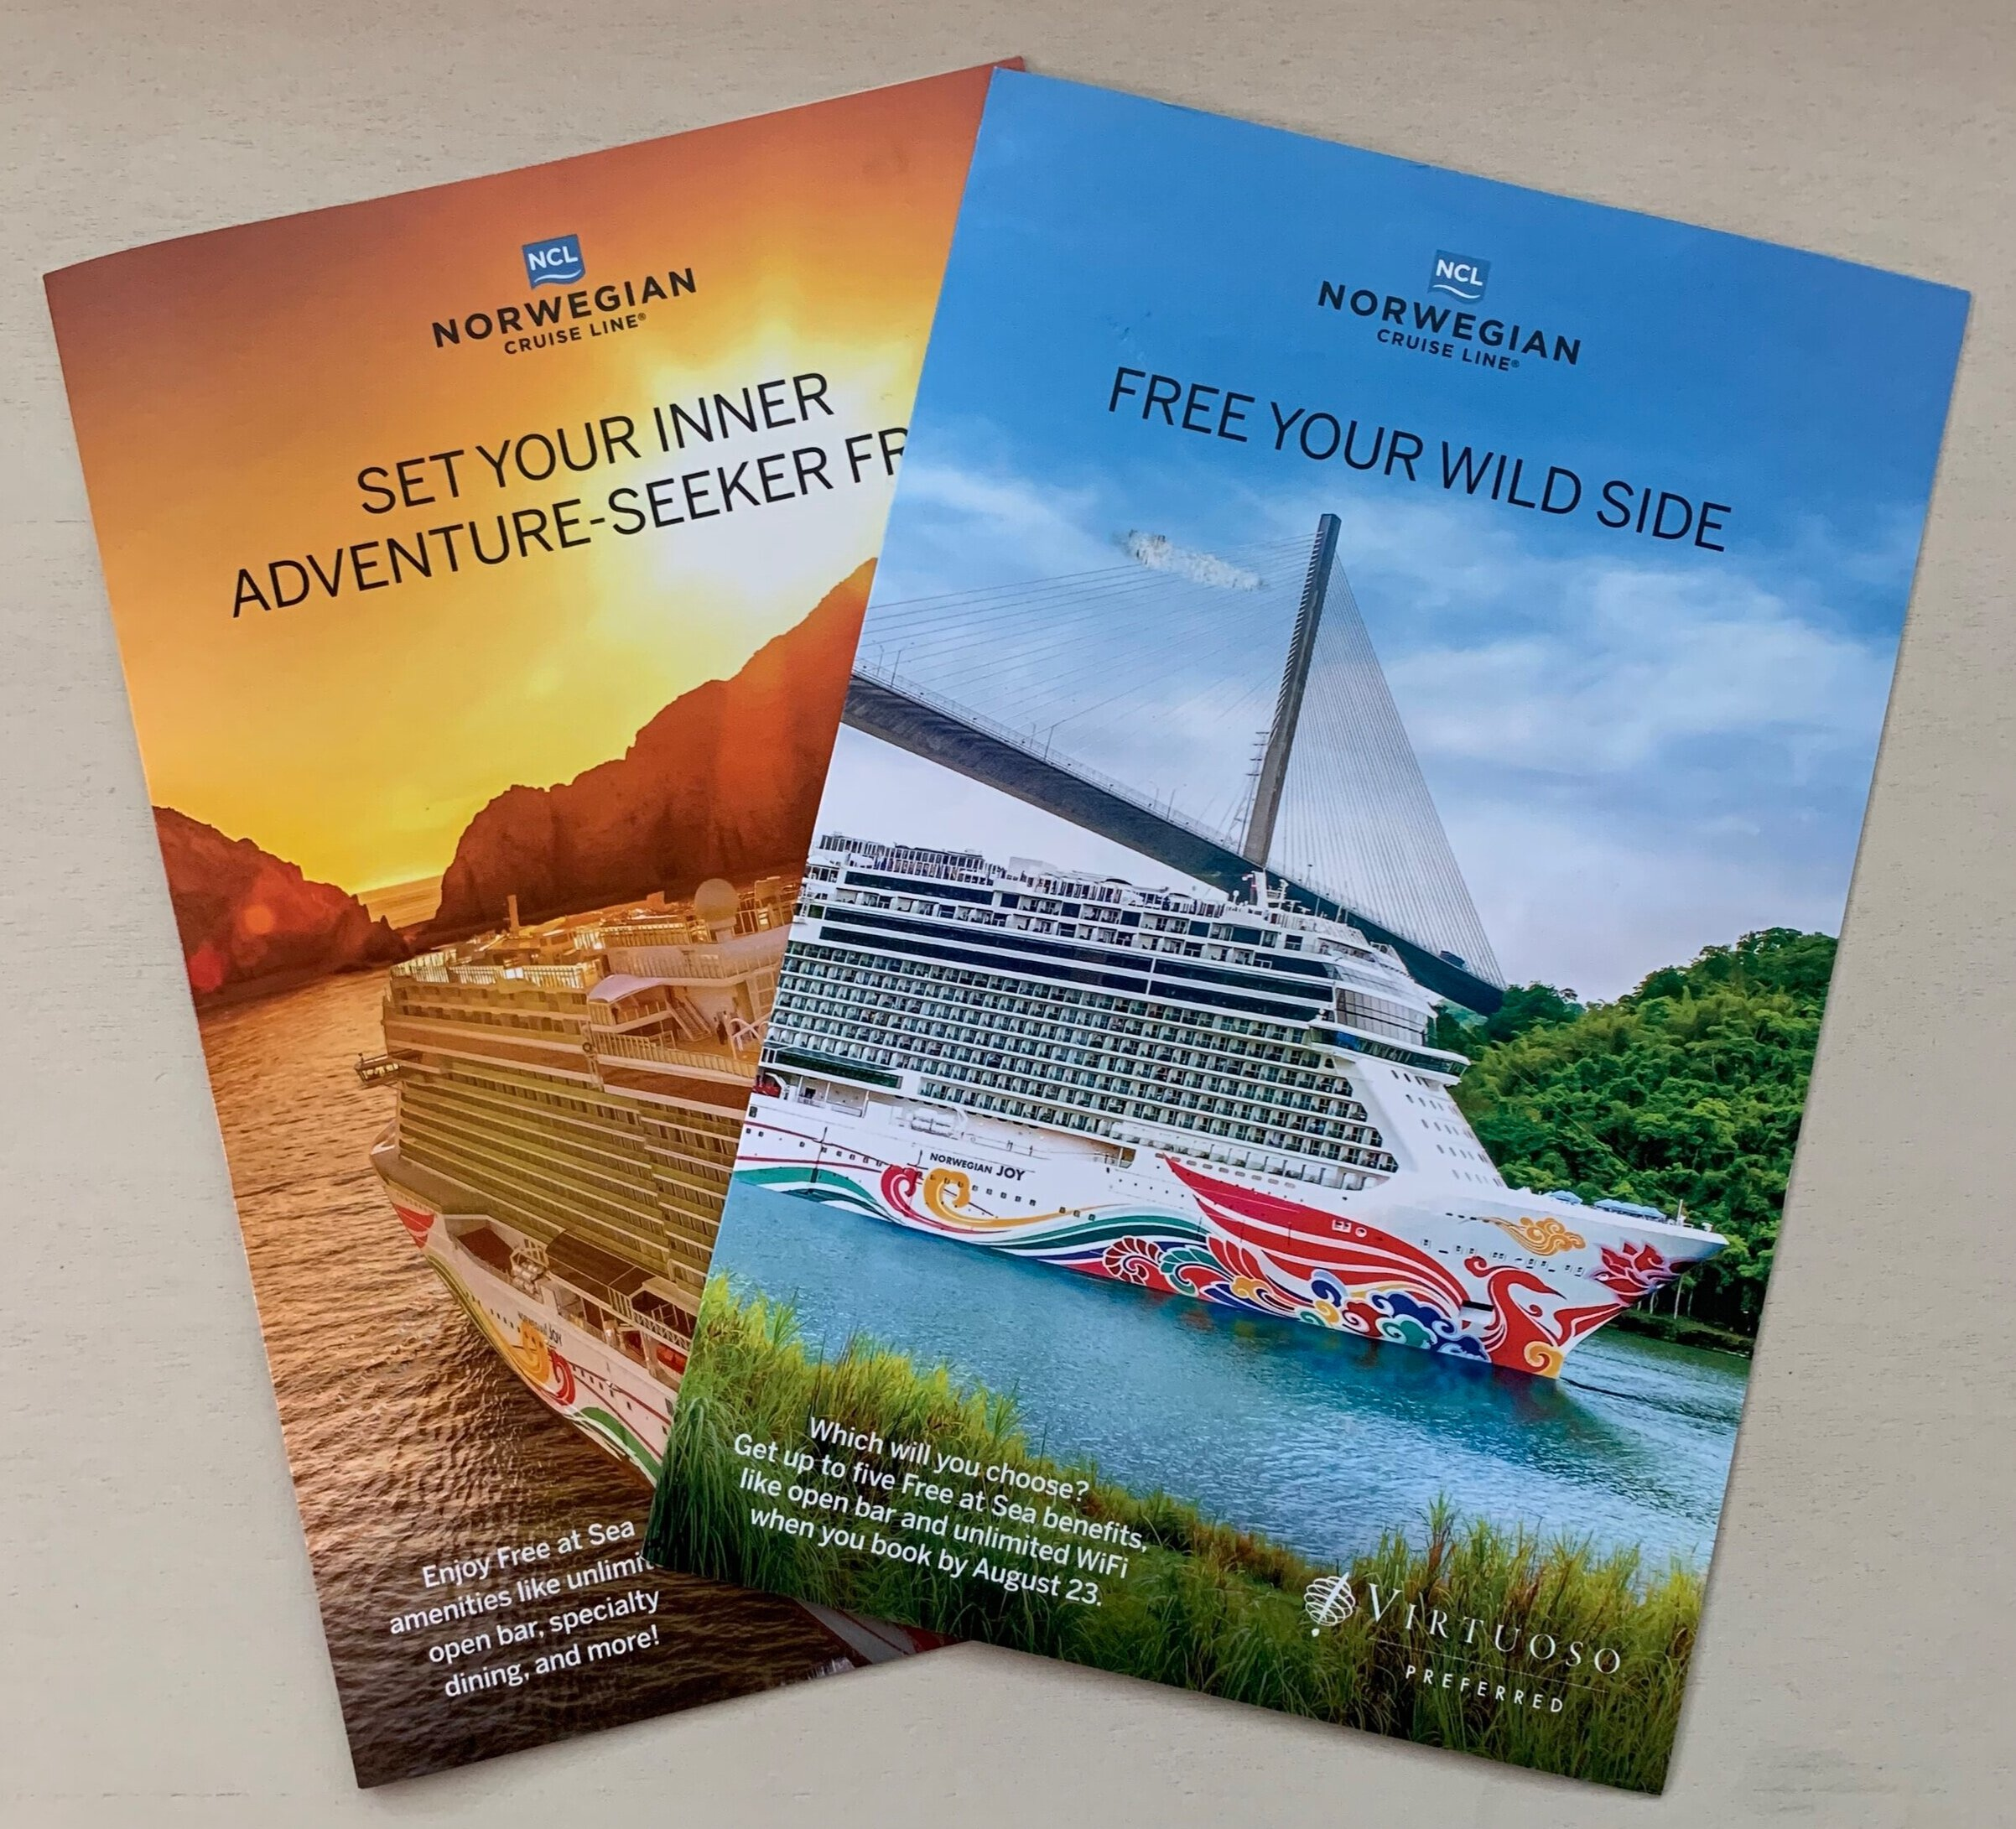 Client: Virtuoso in partnership with Norwegian Cruise Line; Direct Mail, 2019